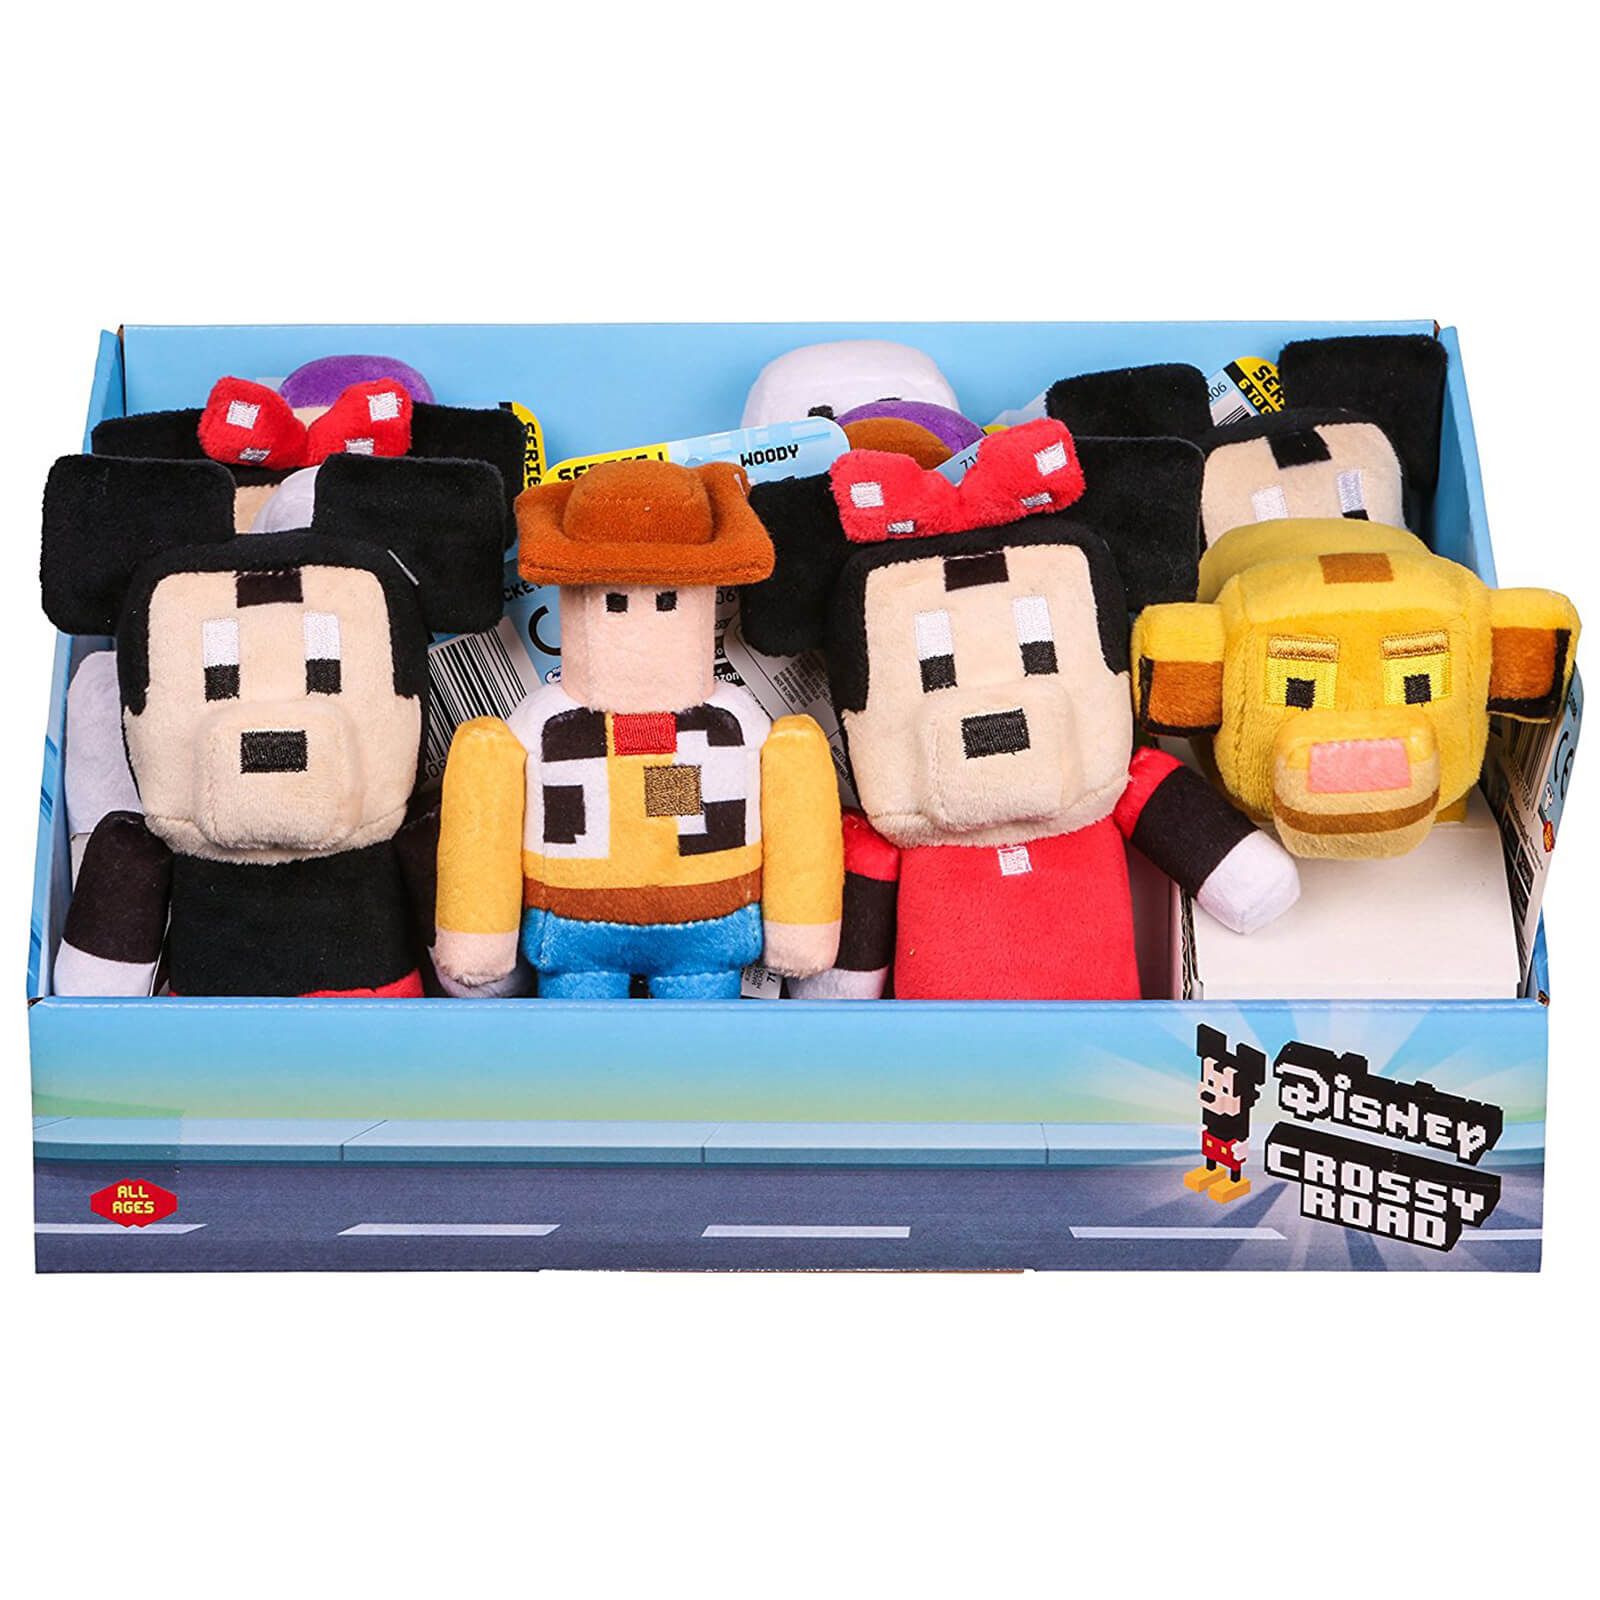 Disney Crossy Road Plush Collectables - 6 Inch